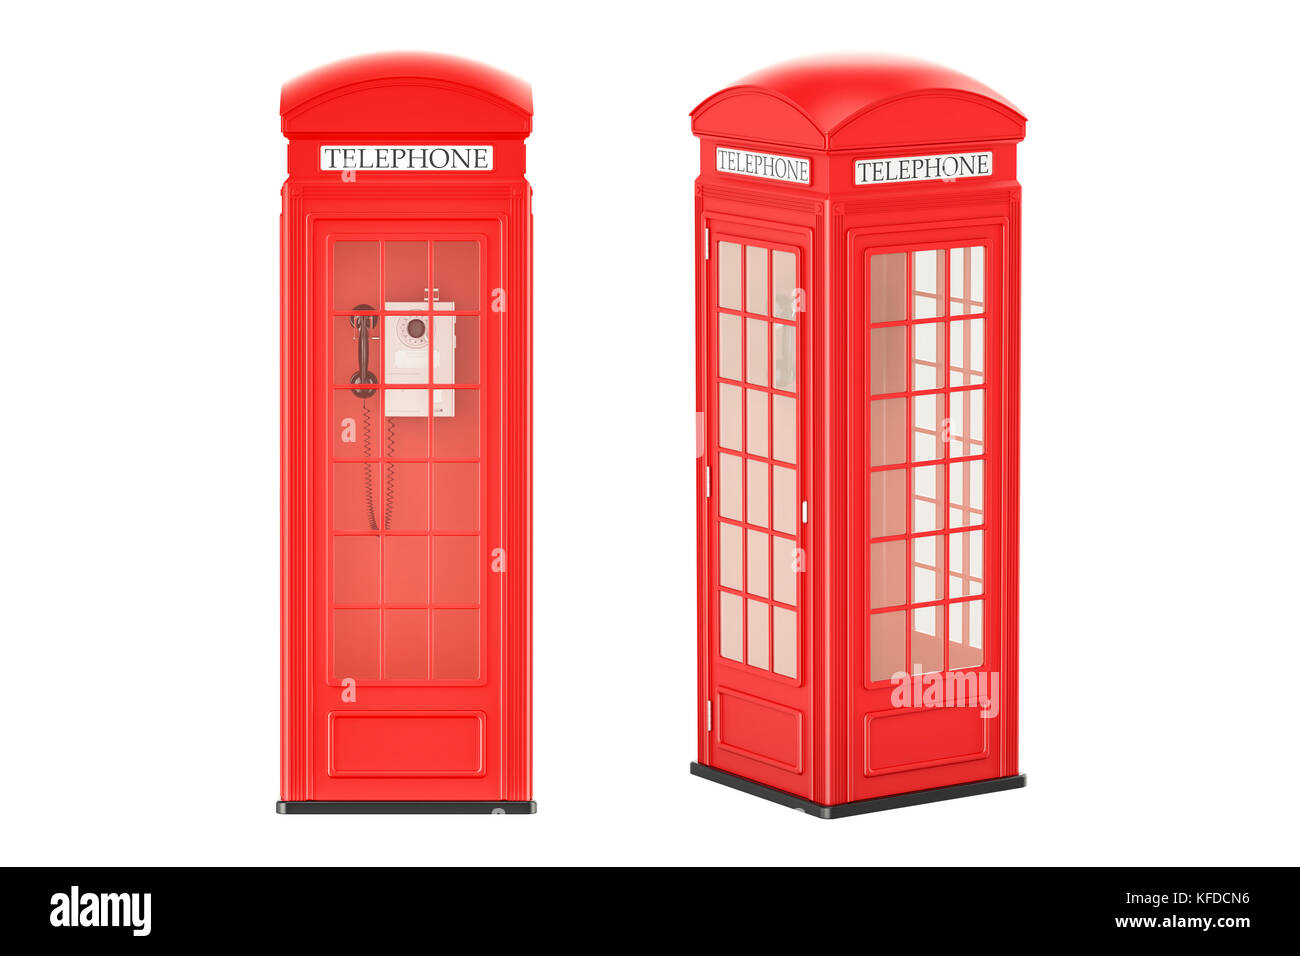 Red telephone boxes, front and side view, 3D rendering isolated on white background - Stock Image